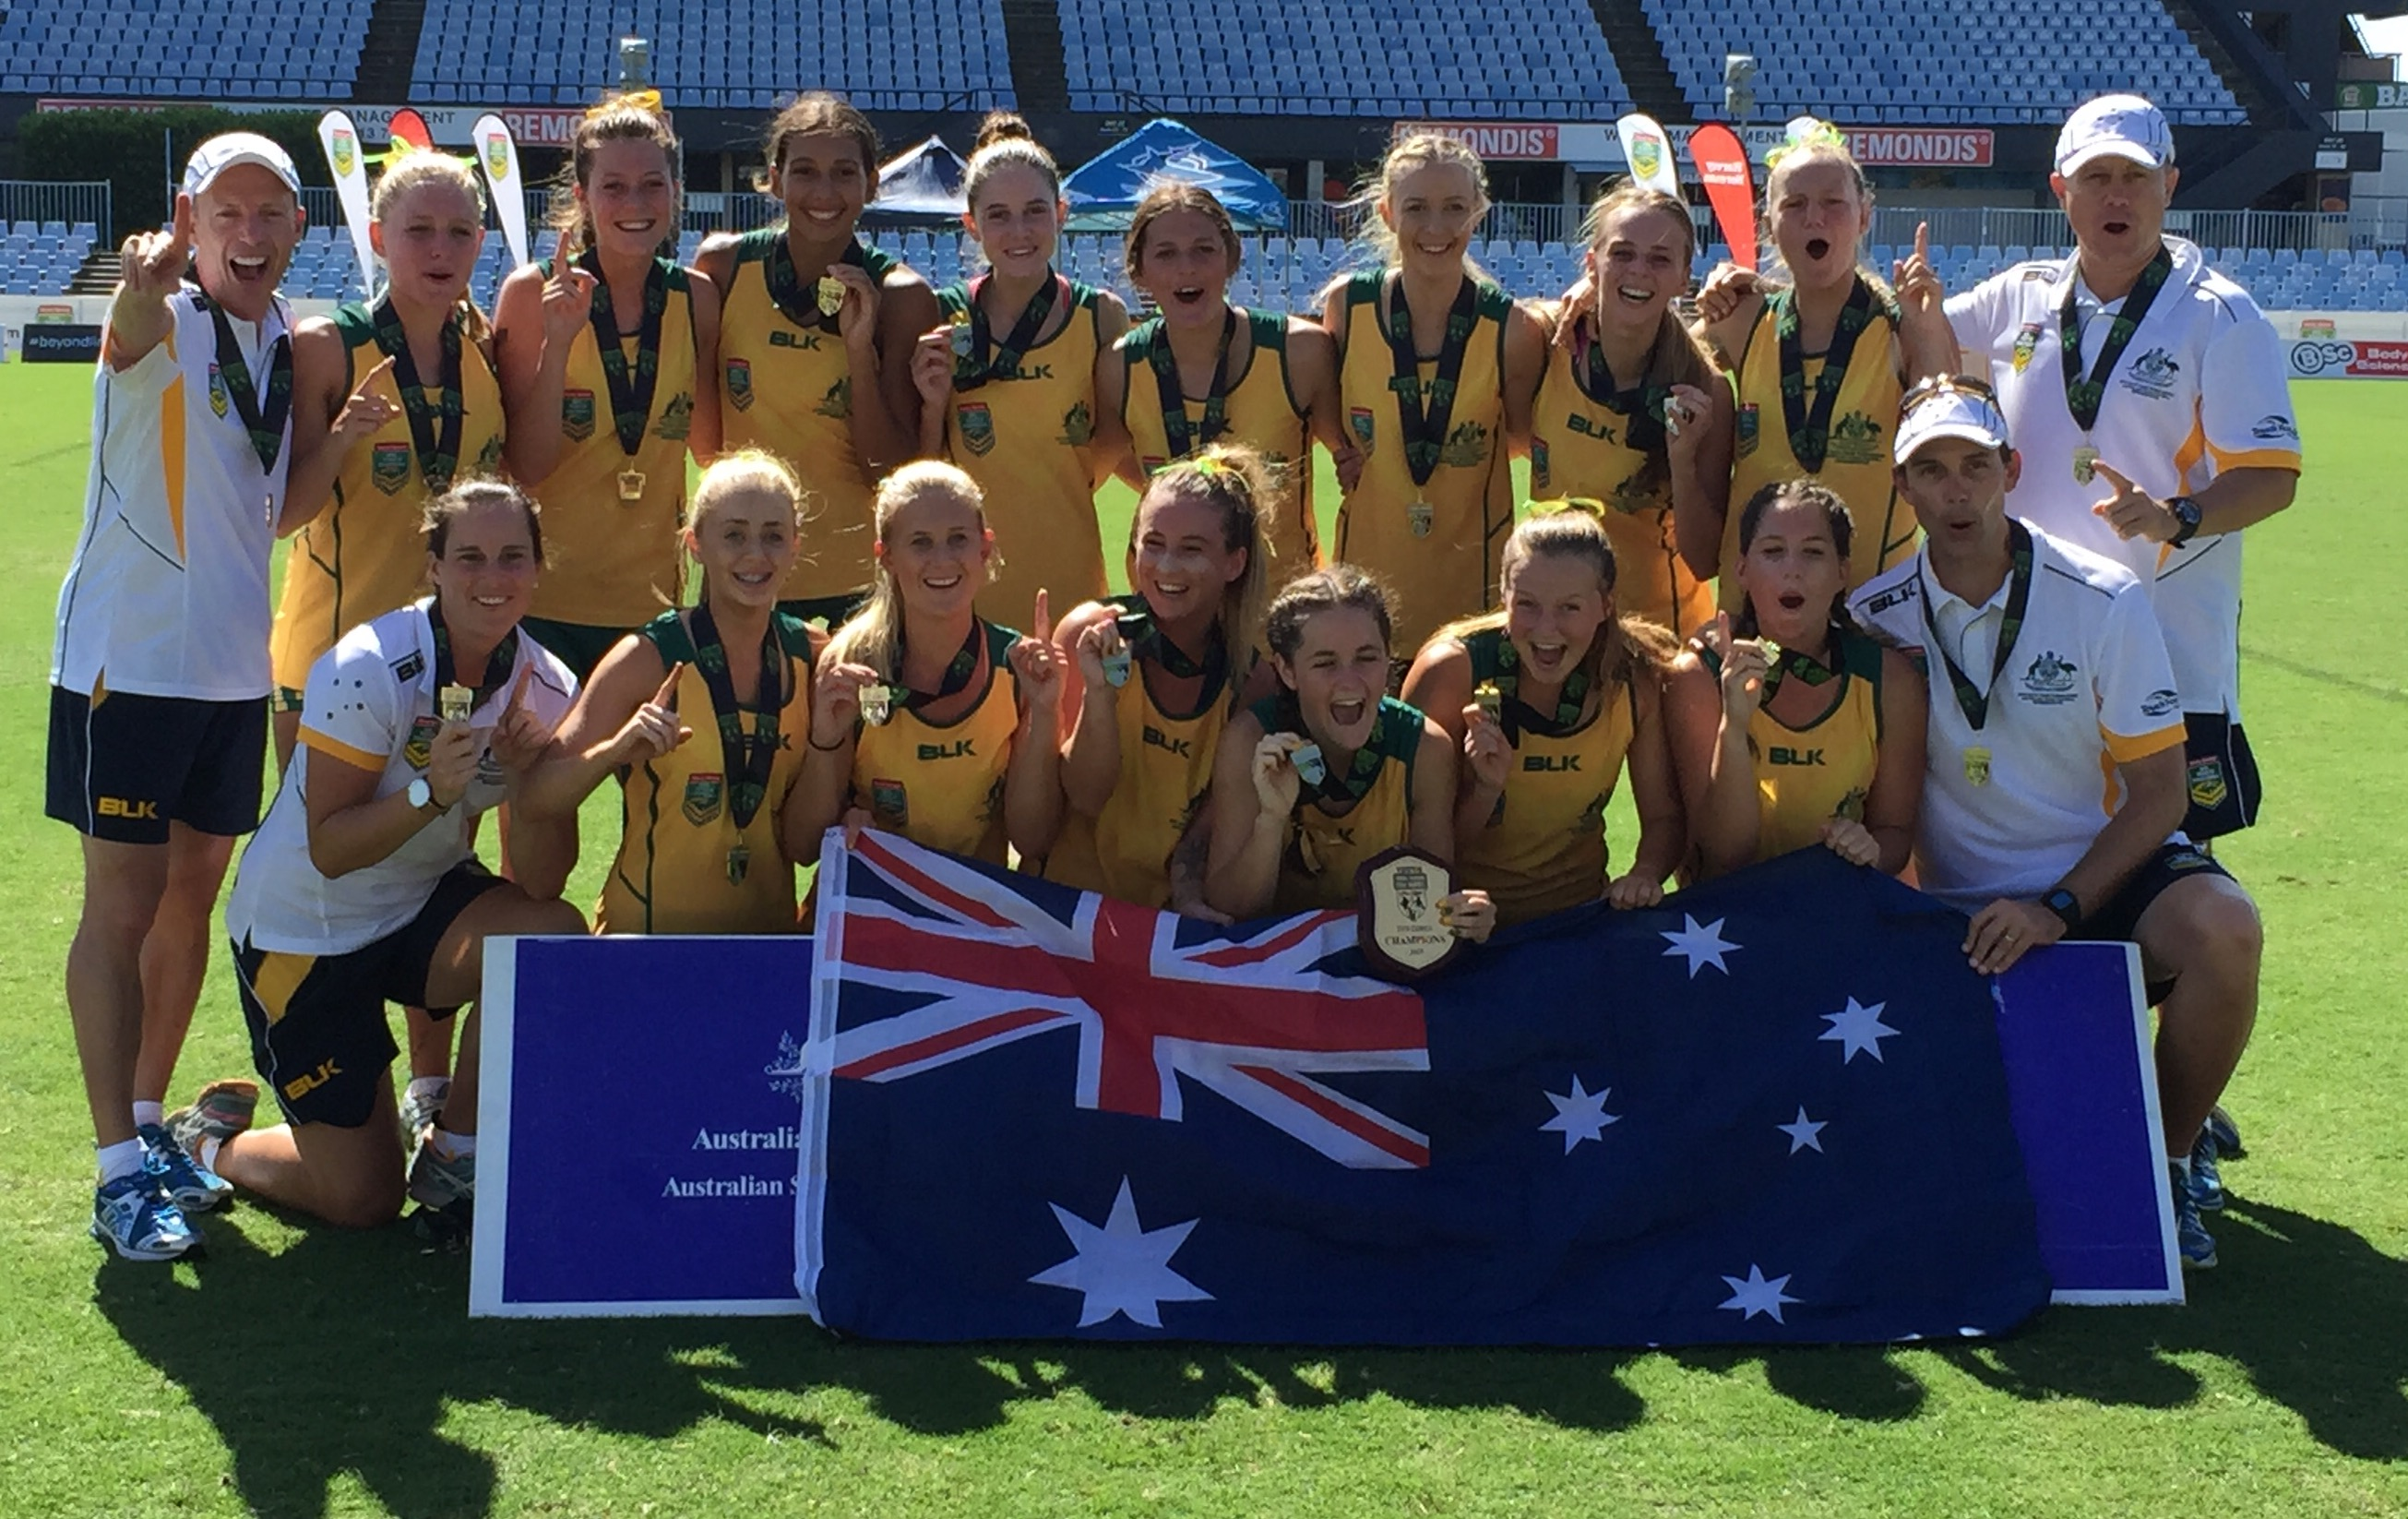 Aussie 18 Girls Champions